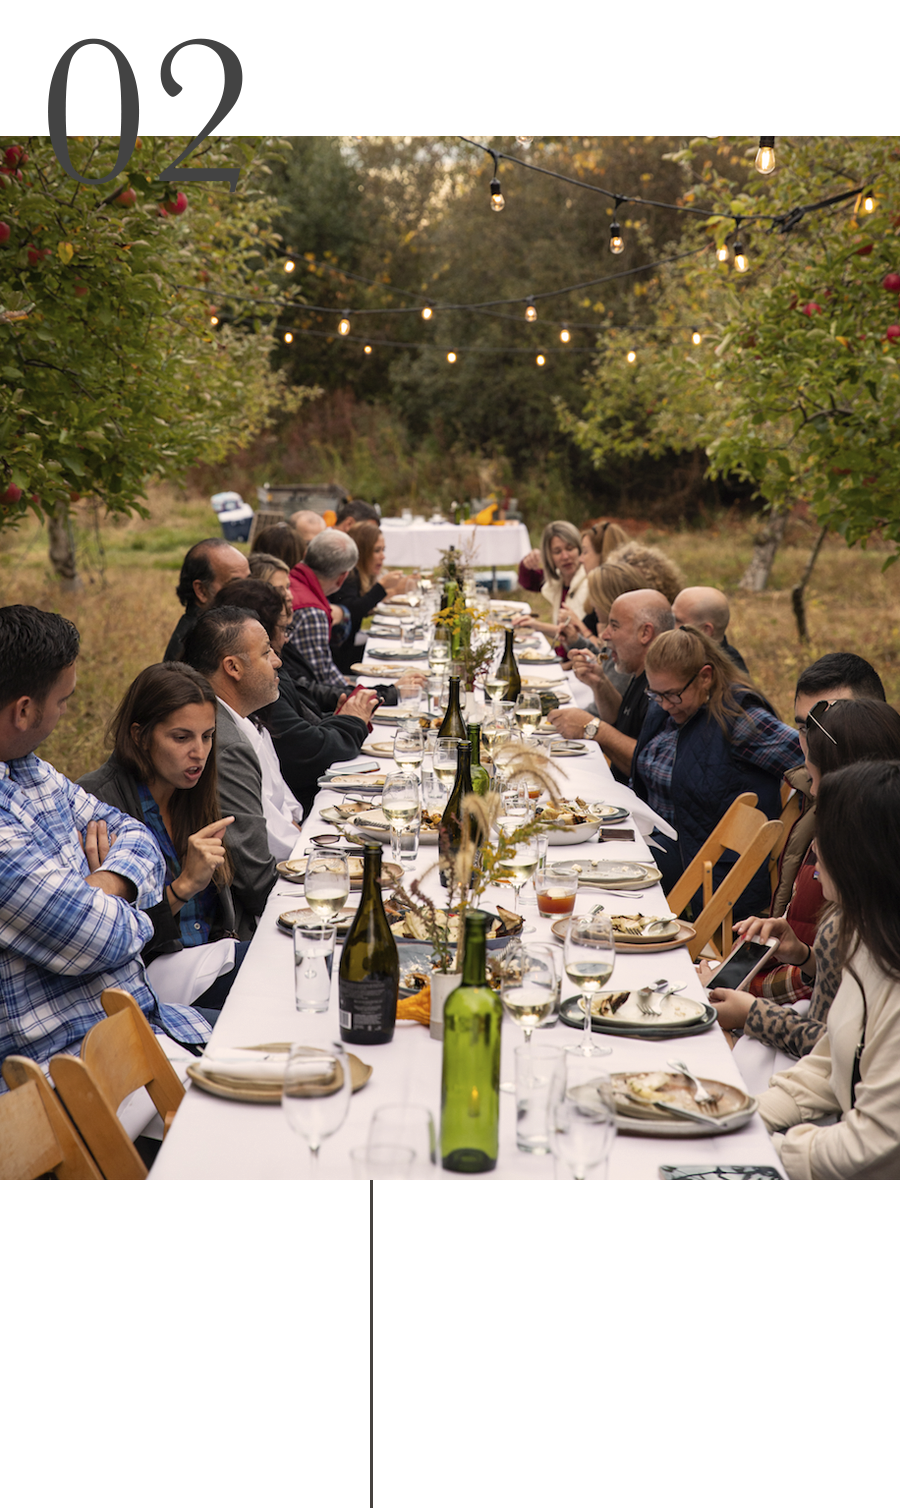 Wood Fire Food Farm to Table Private Events Experiential catering Book Now Daniel Sabia